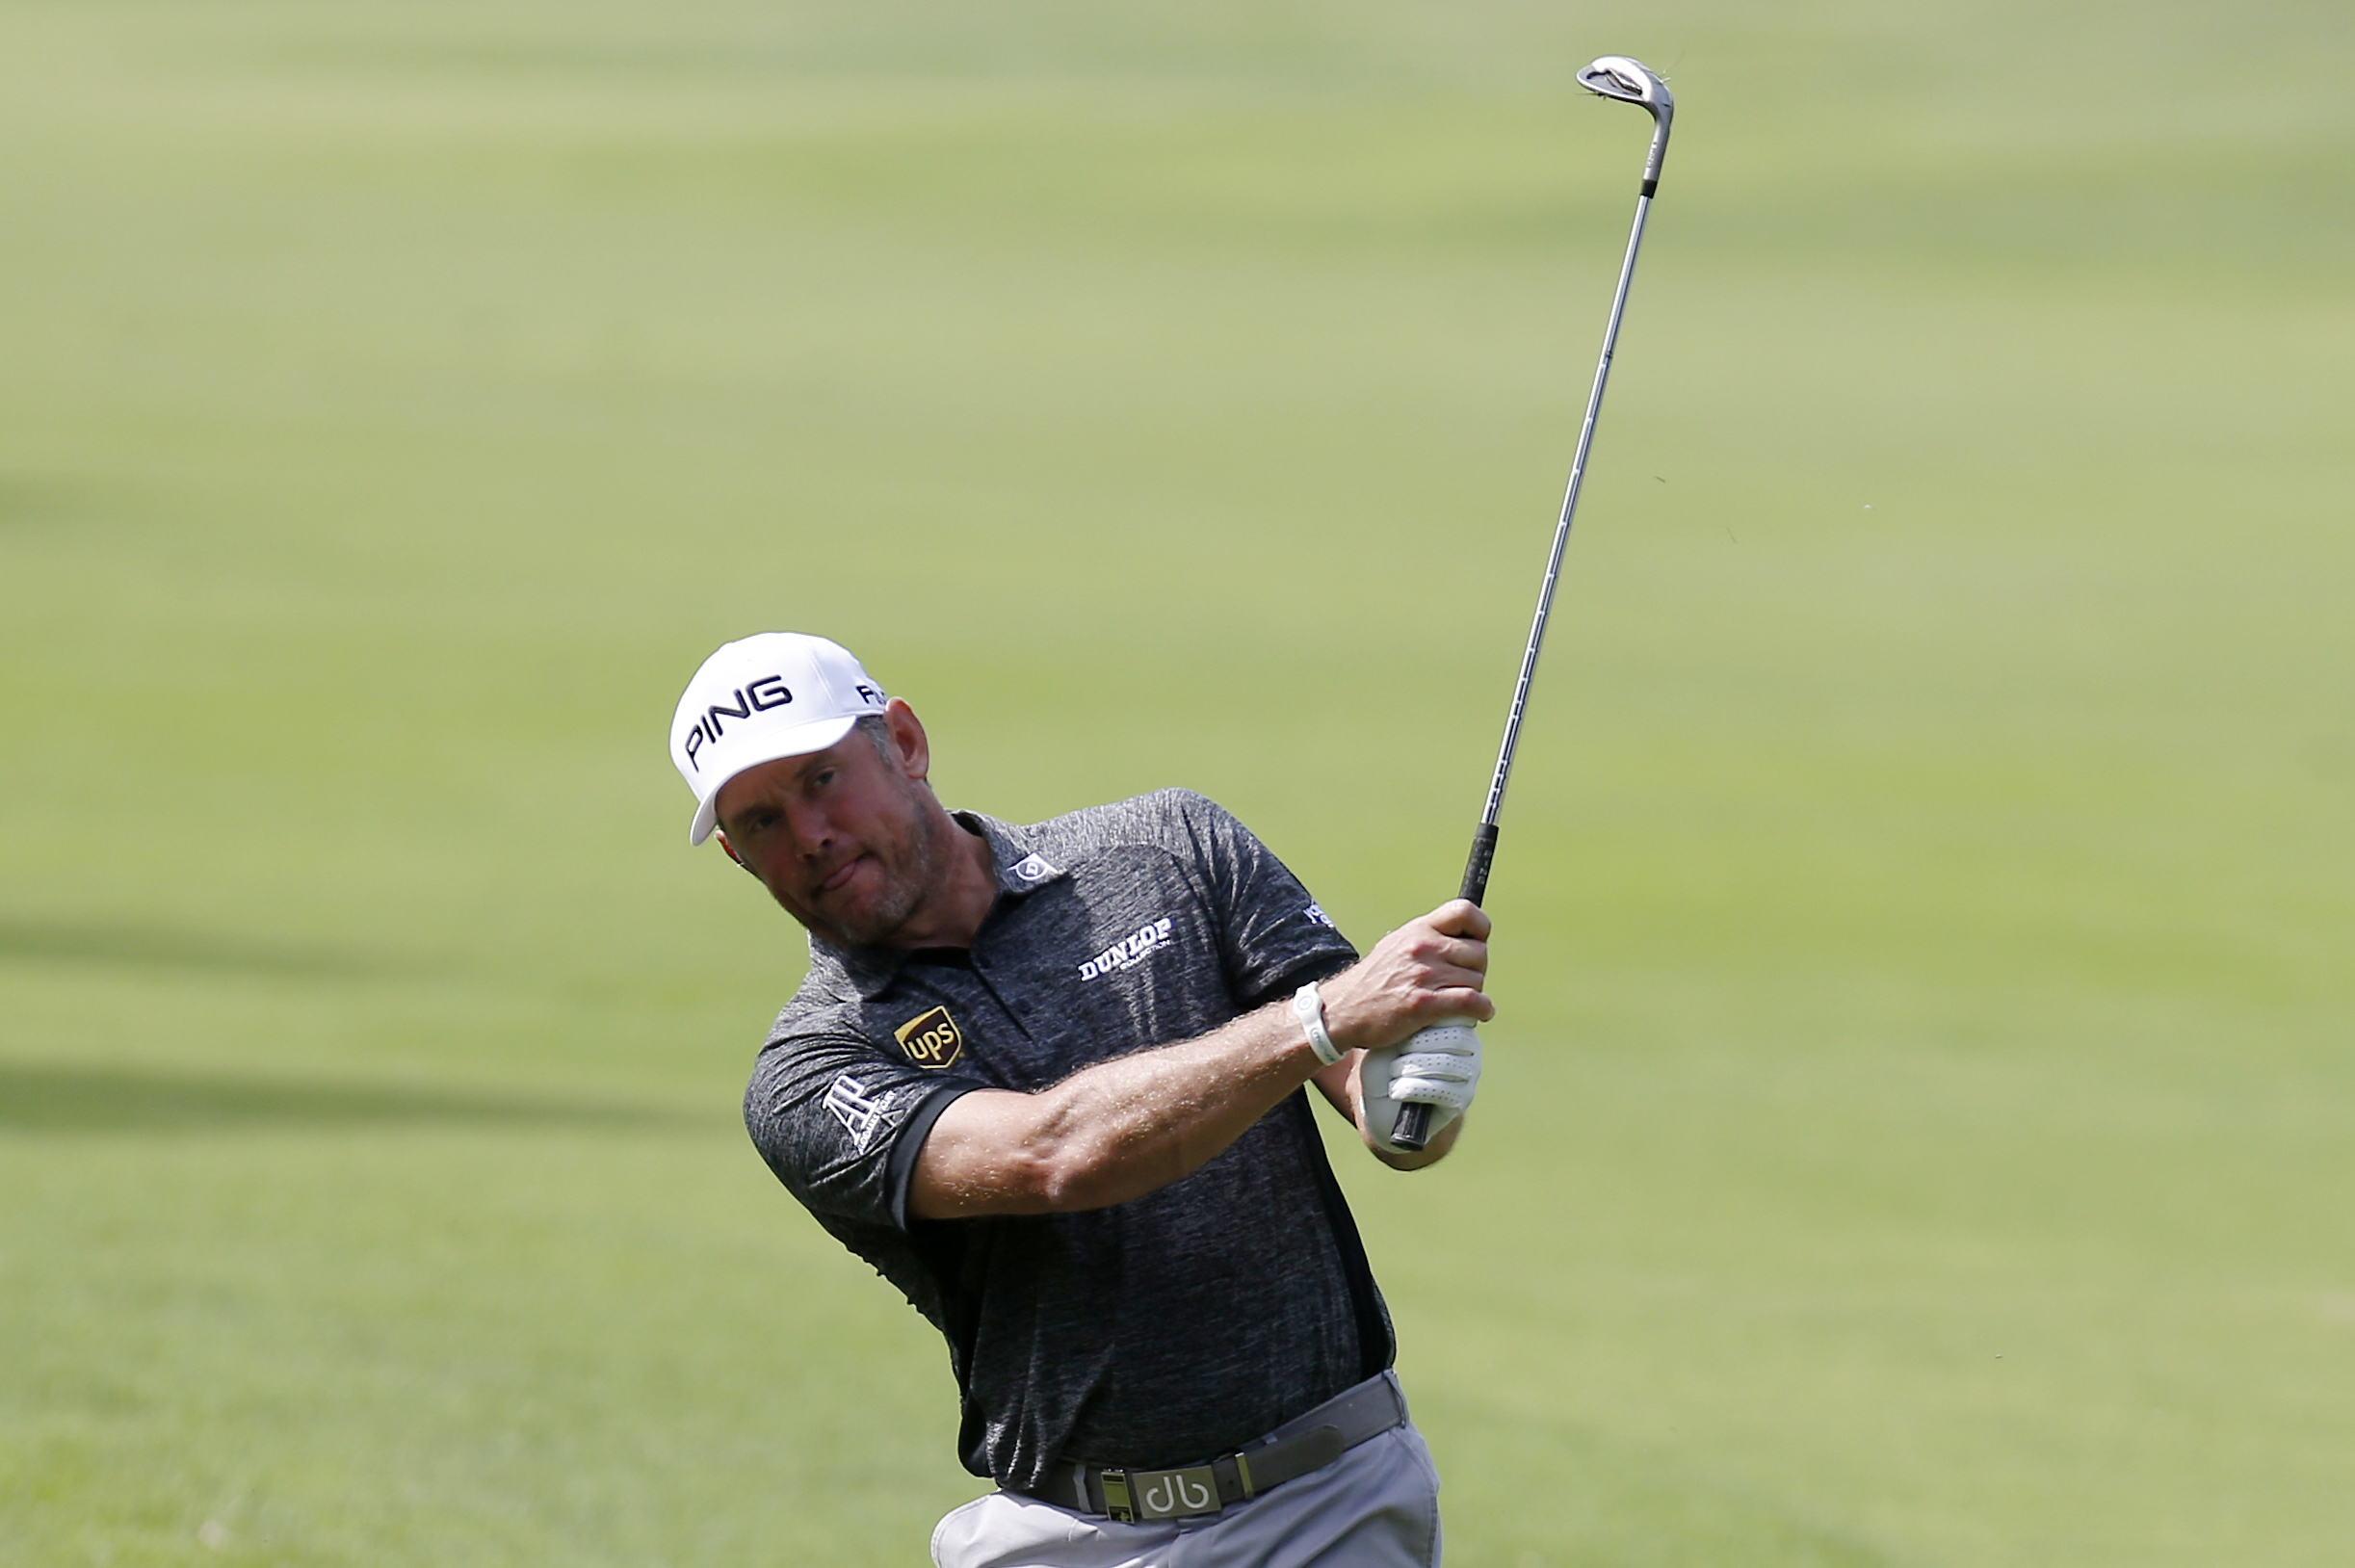 Britain's Lee Westwood hits the ball during the 73th Italy Open Golf Championship in Monza, Italy, Saturday, Sept. 17, 2016. (AP Photo/Antonio Calanni)